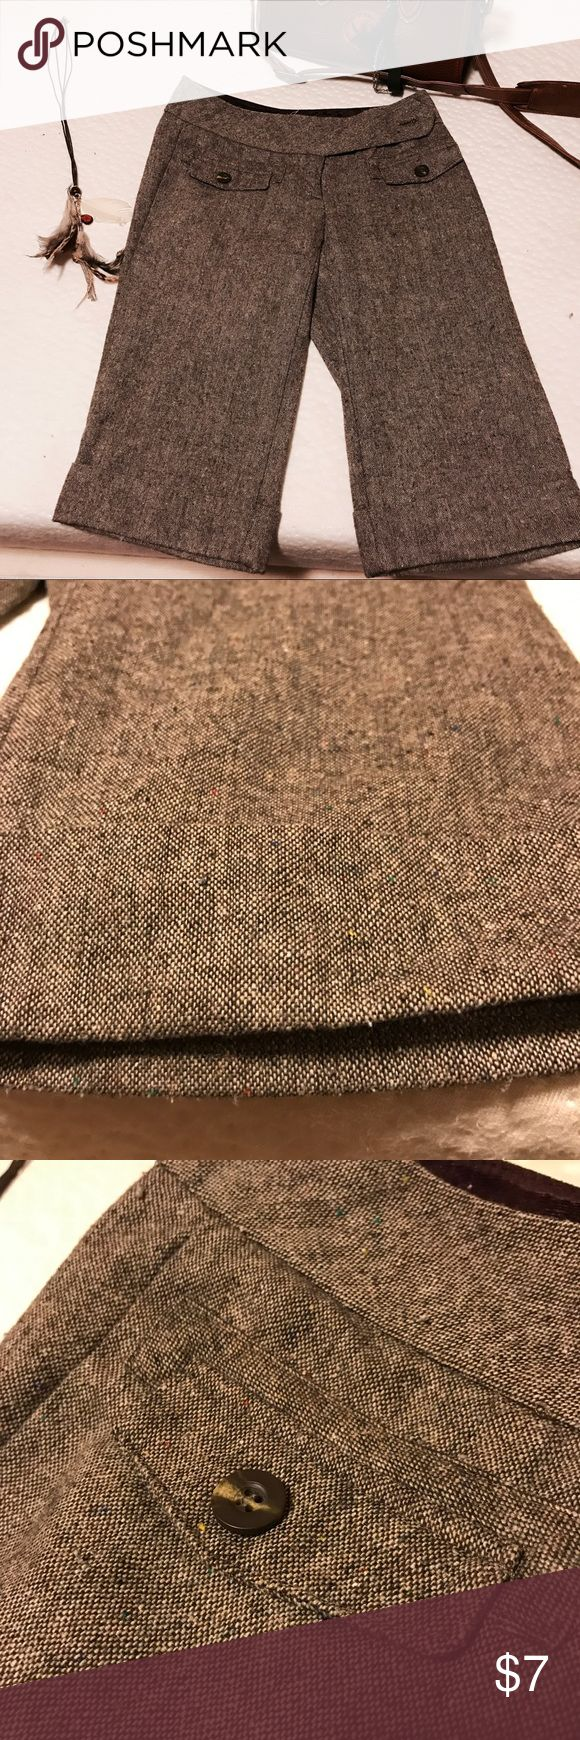 💐HERITAGE TWEED CROPPED SLACKS PANTS Button embellishments. Size 1. Cute. Worn but in good shape. Folded and cropped. Bundle and save ! Xo Heritage Pants